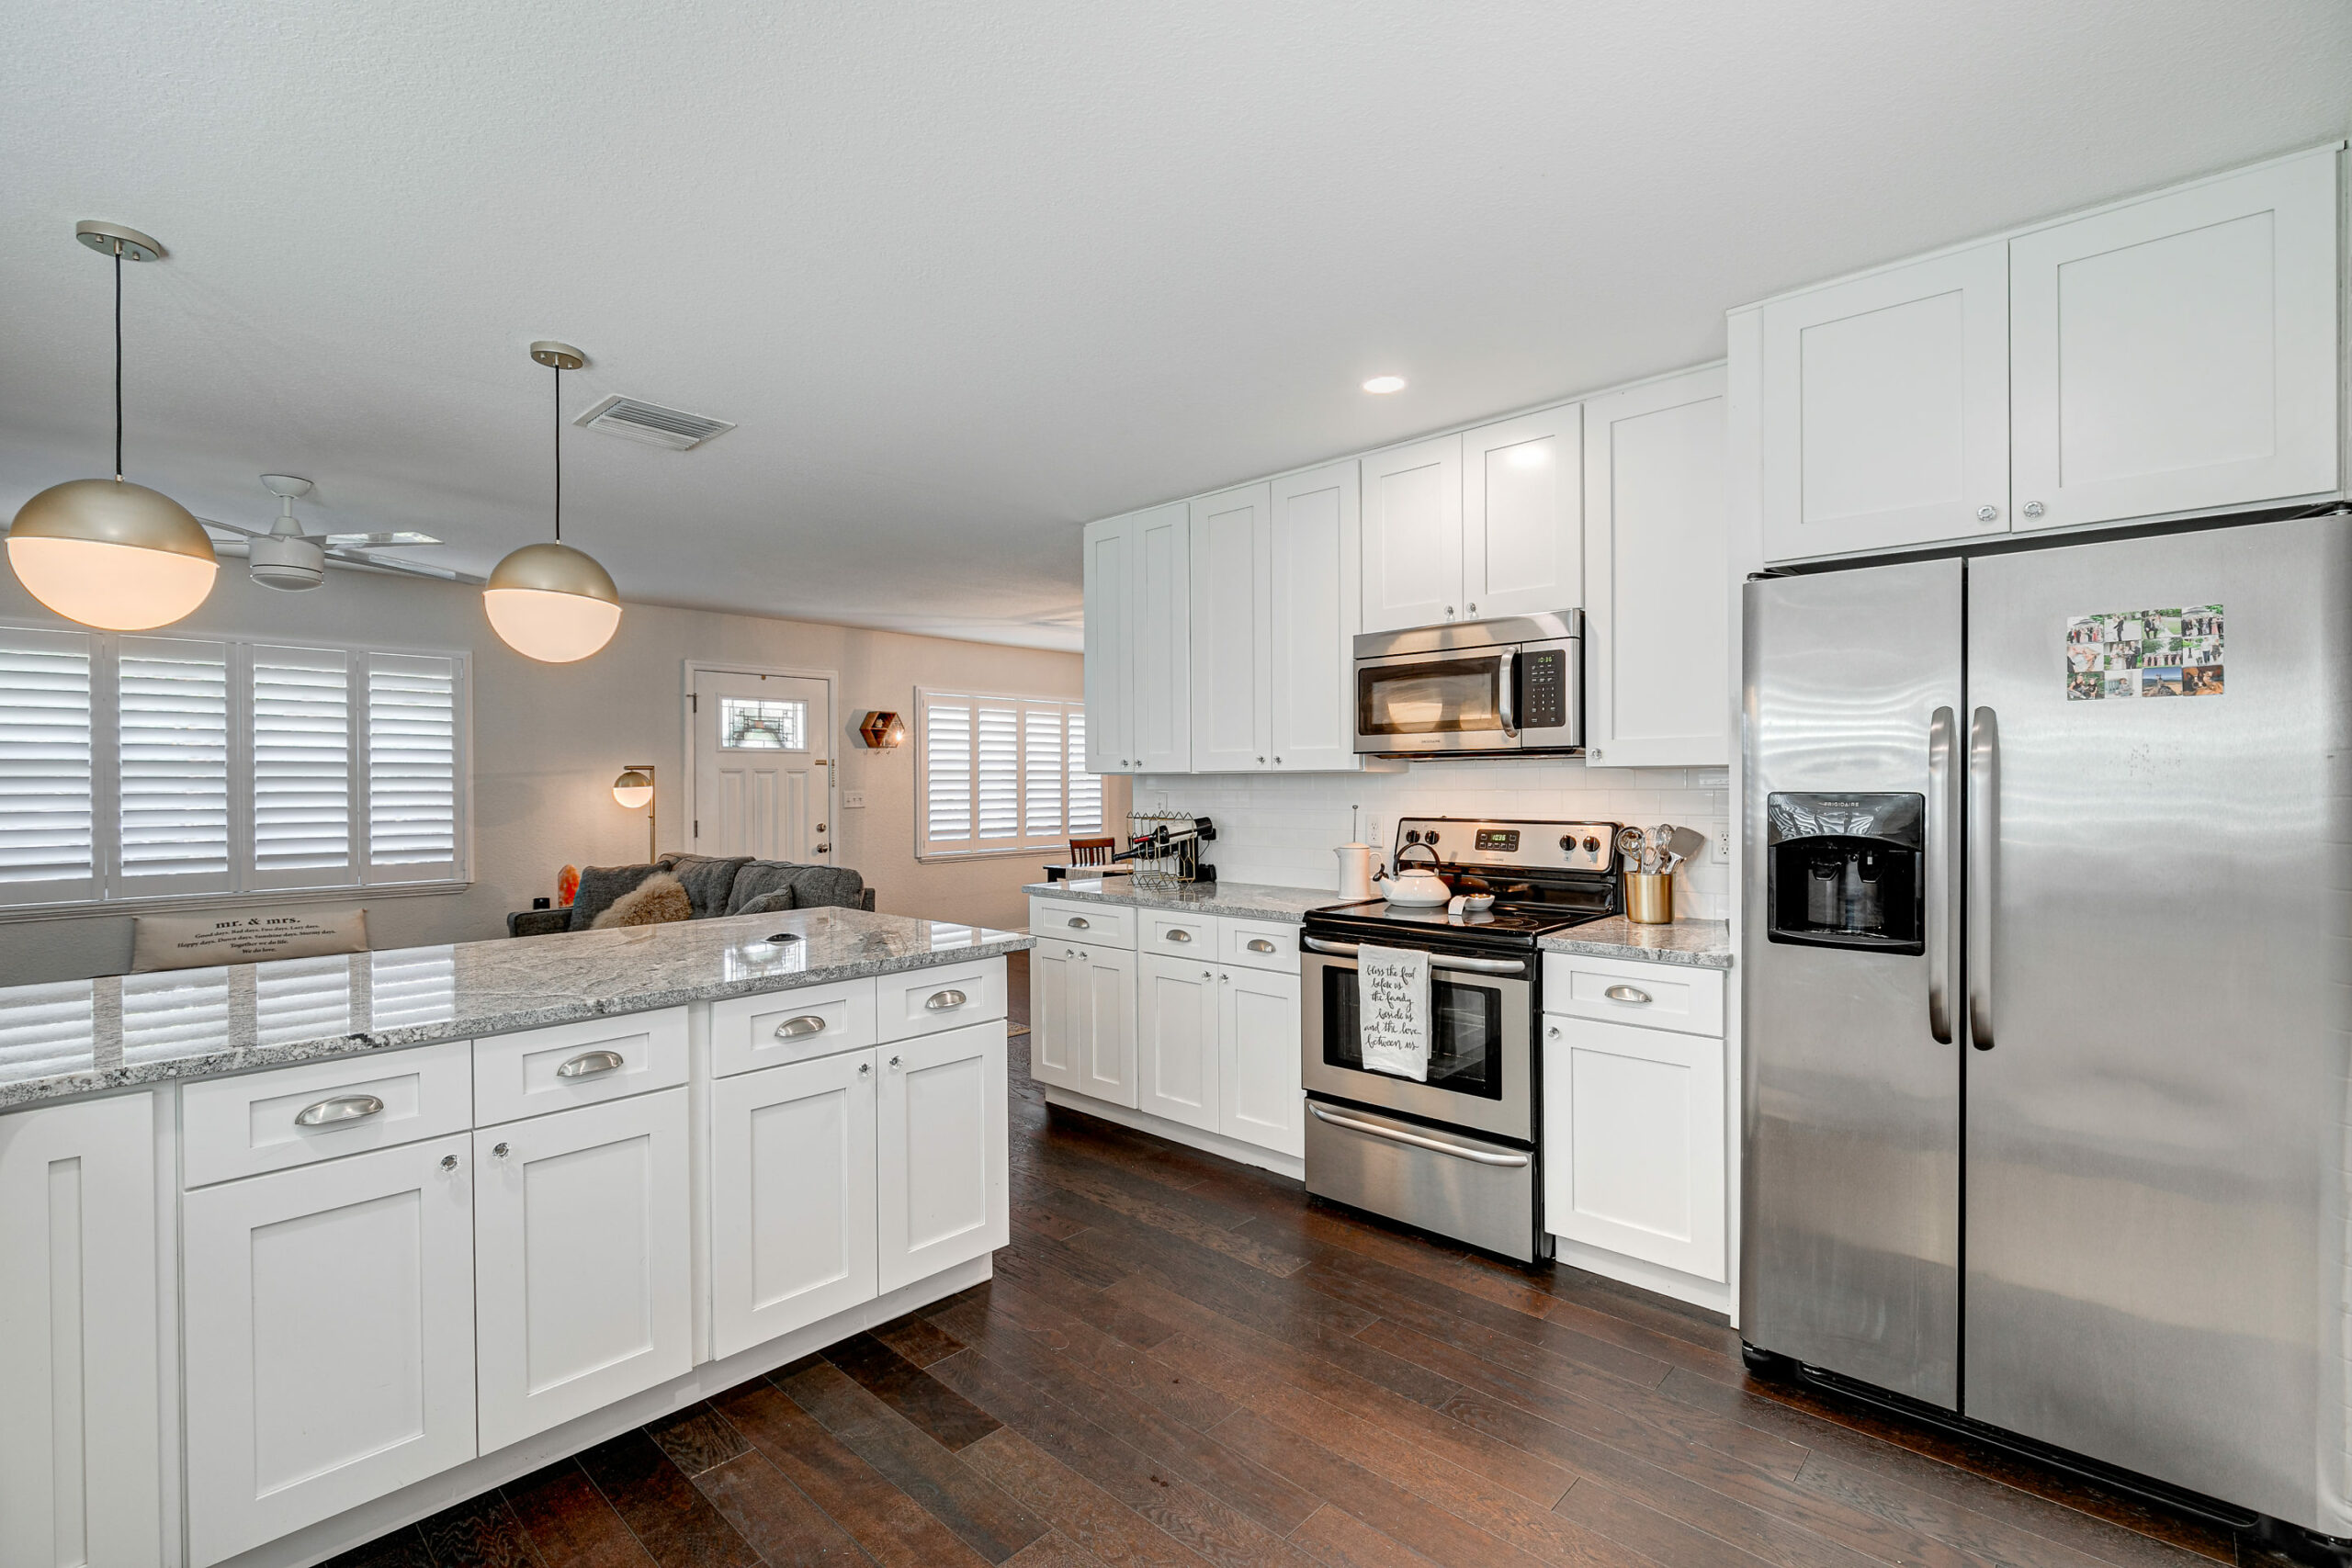 4305-Bay-Ave-Large-Kitchen